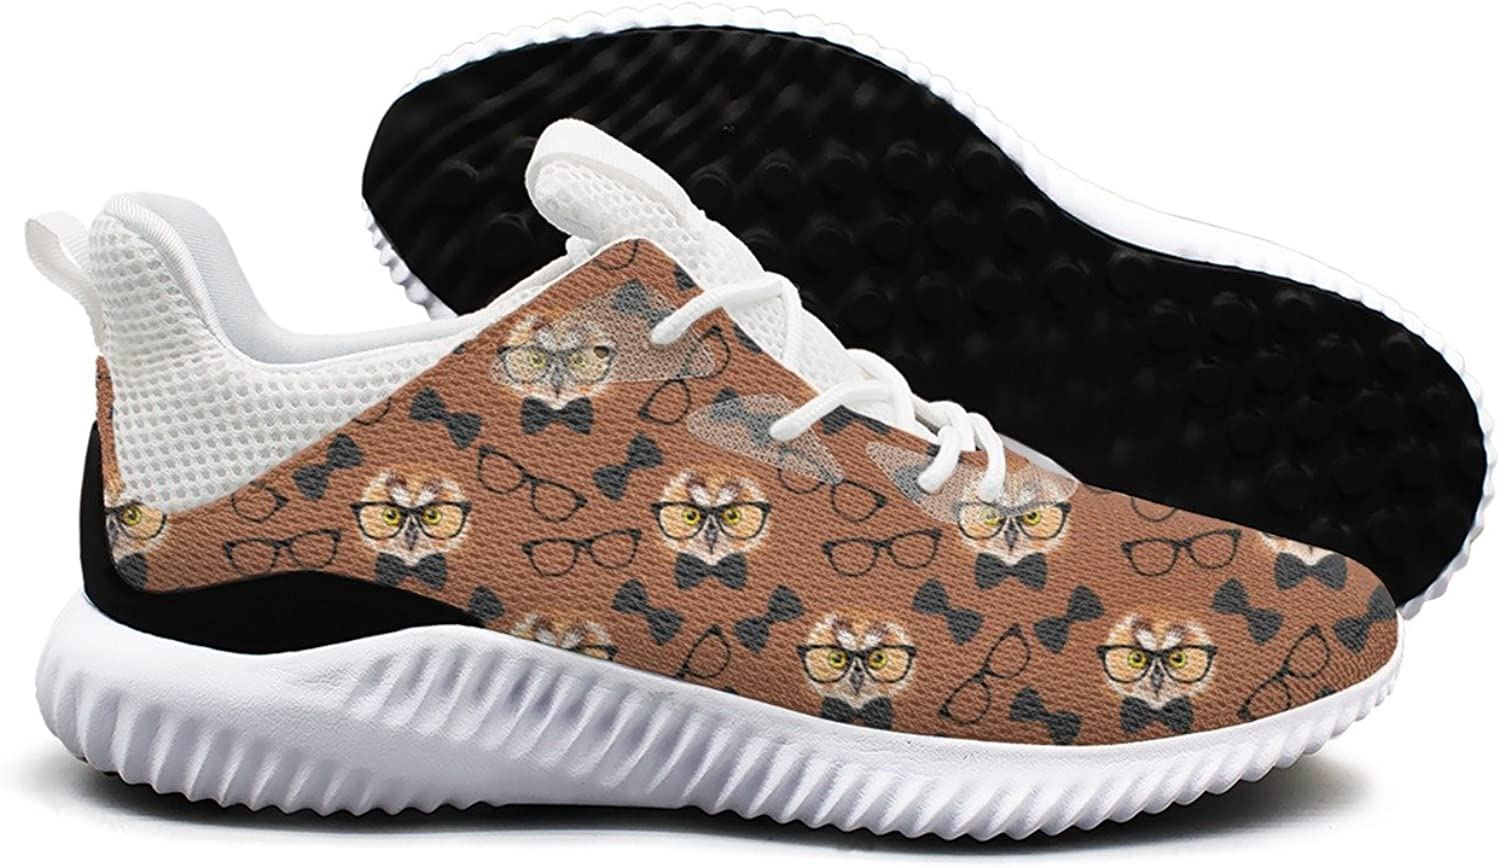 Owl with Glasses Leisure Design Running shoes Woman's Printing Jogger Comfortable